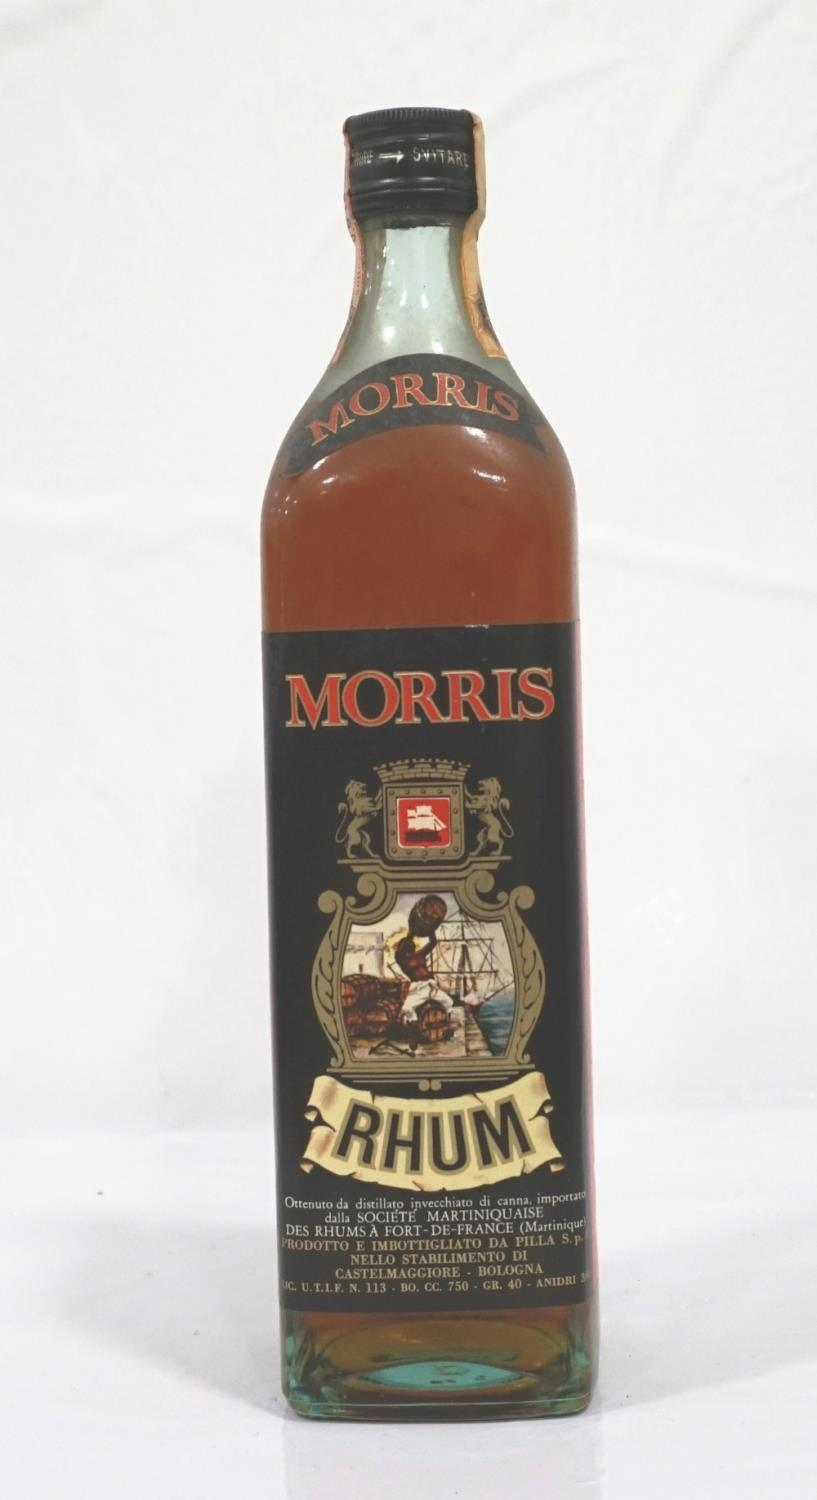 Lot 25 - MORRIS RHUM CIRCA 1960s A well presented bottle of Morris Rhum which we believe to be from the